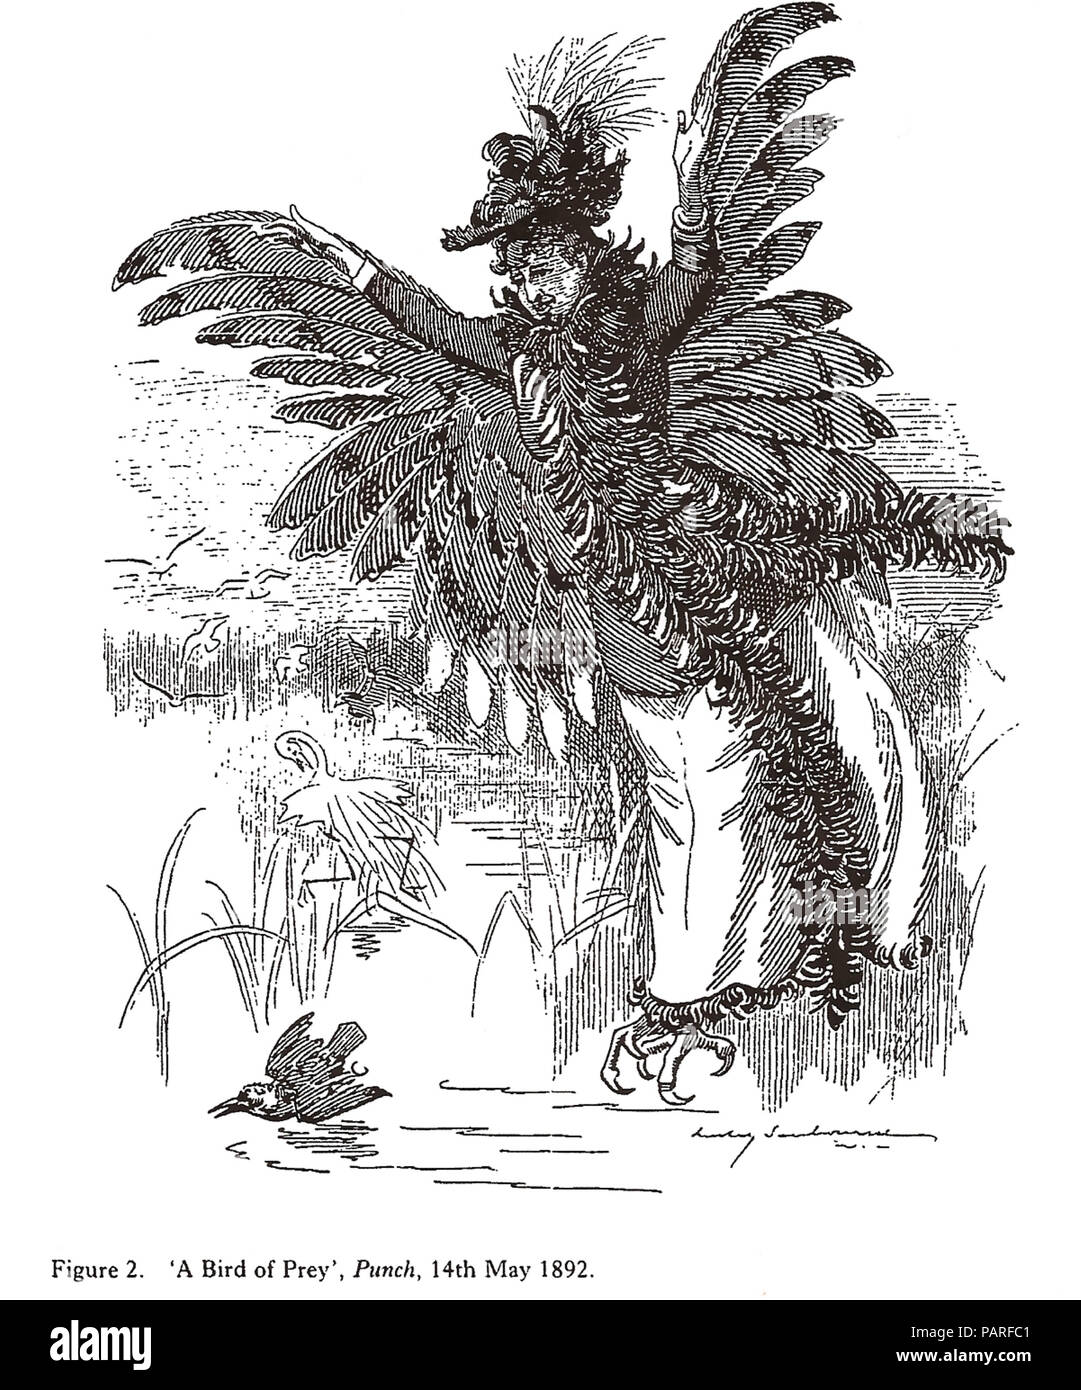 FEATHERED HAT - bird feathers were fashionable in late Victorian/Edwardian society a style opposed by founder members of the RSPB. Punch cartoon. - Stock Image